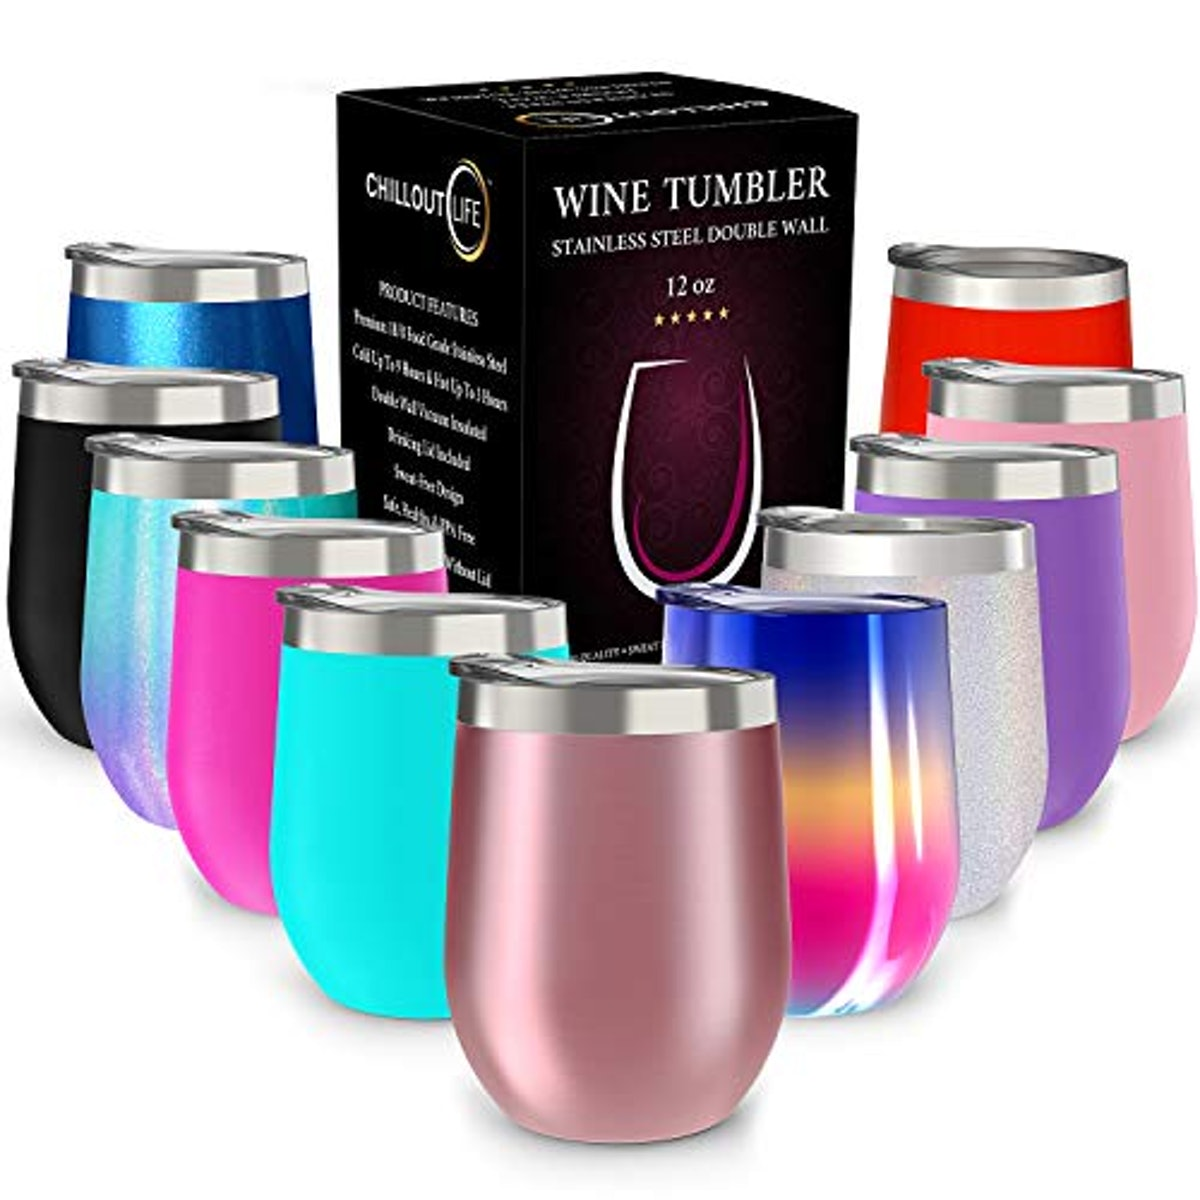 CHILLOUT LIFE Insulated Wine Tumbler